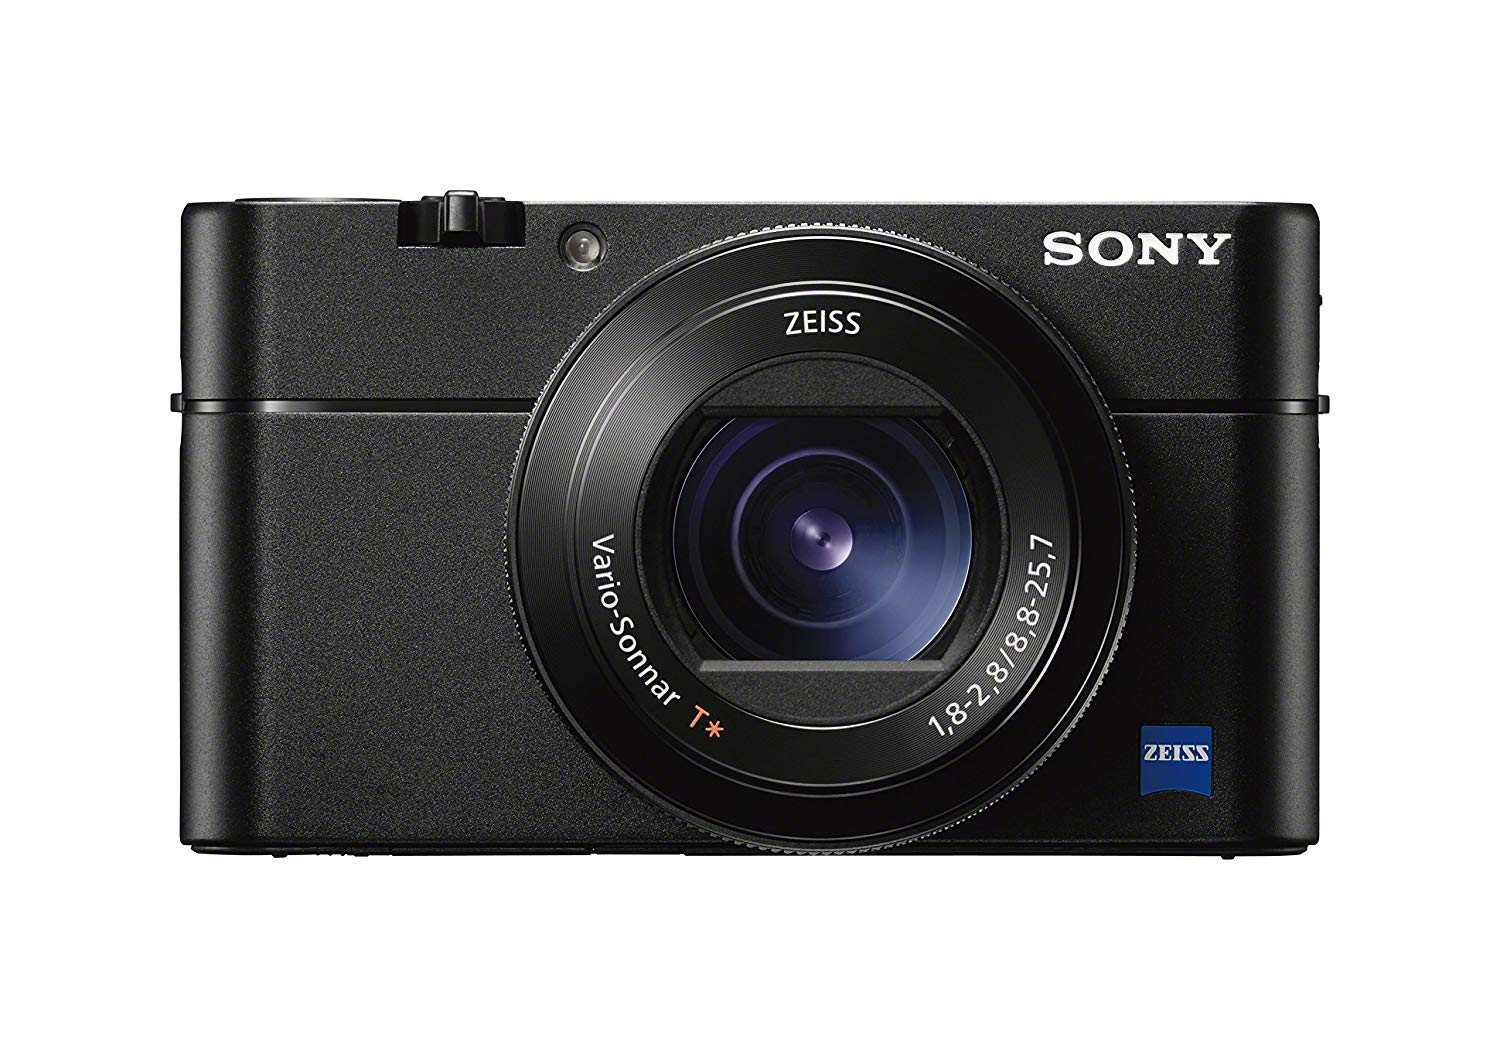 Sony RX100 ($368) - 20.2MP 1